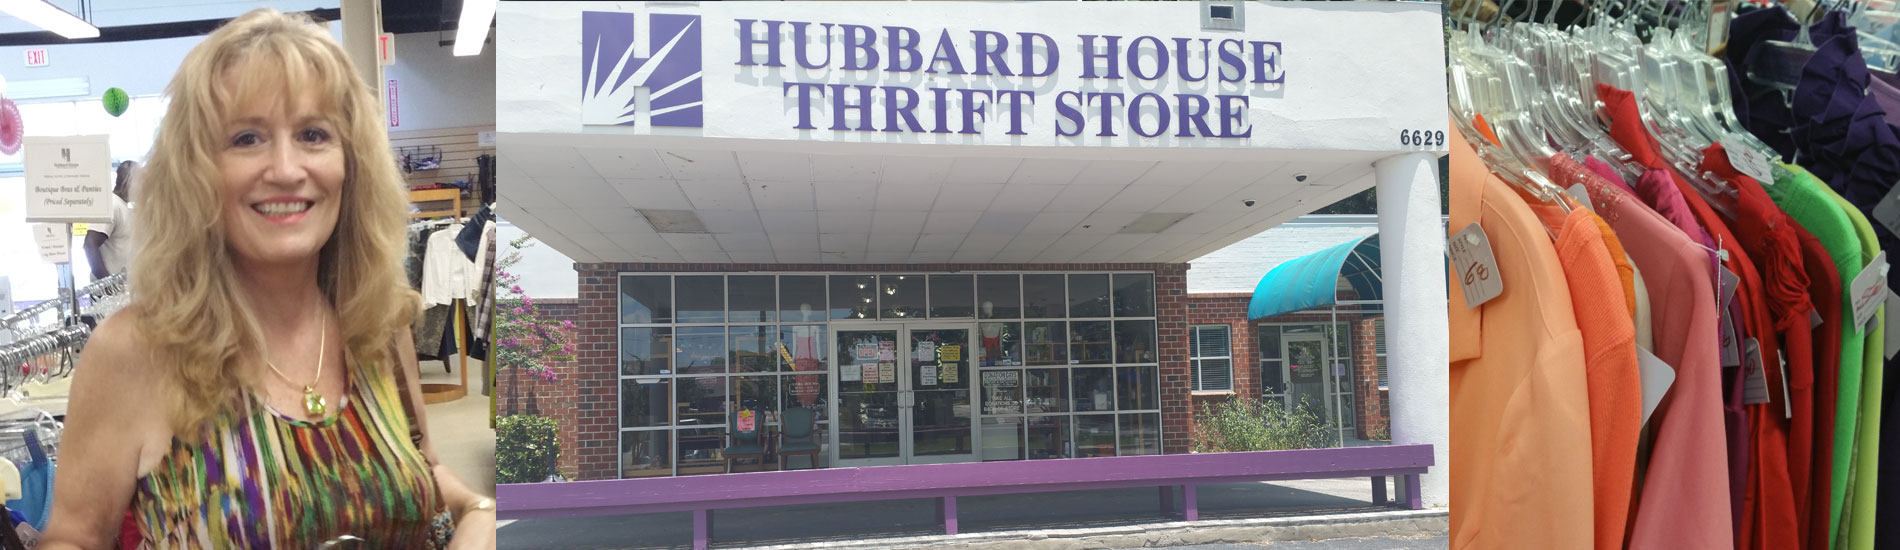 Fab Finds! @ Hubbard House Thrift Store